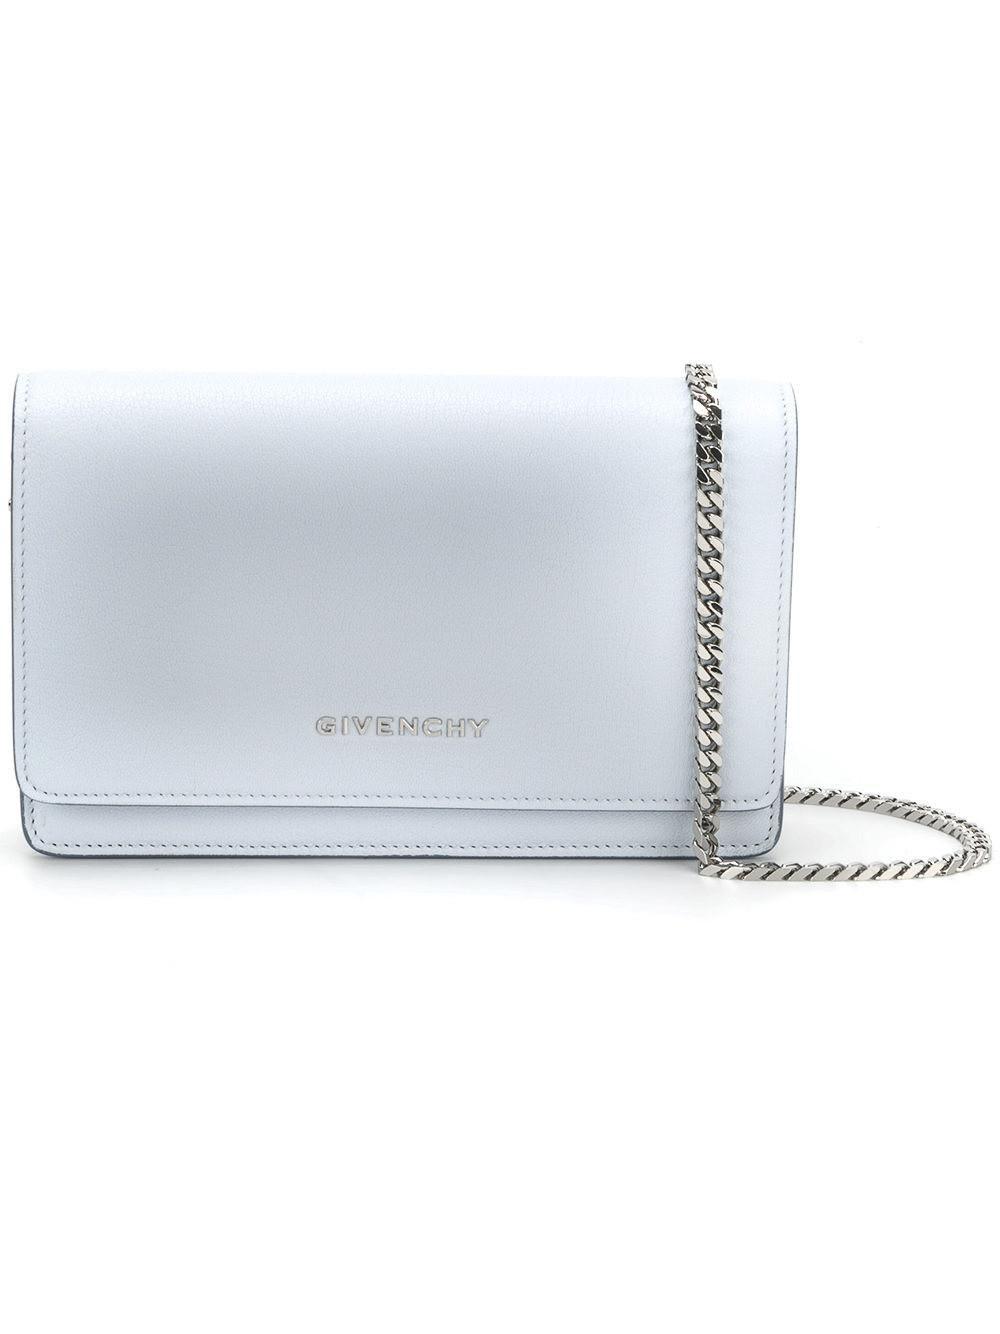 14def5ca80 Gallery. Previously sold at: The Webster · Women's Wallet On Chain Women's Givenchy  Pandora